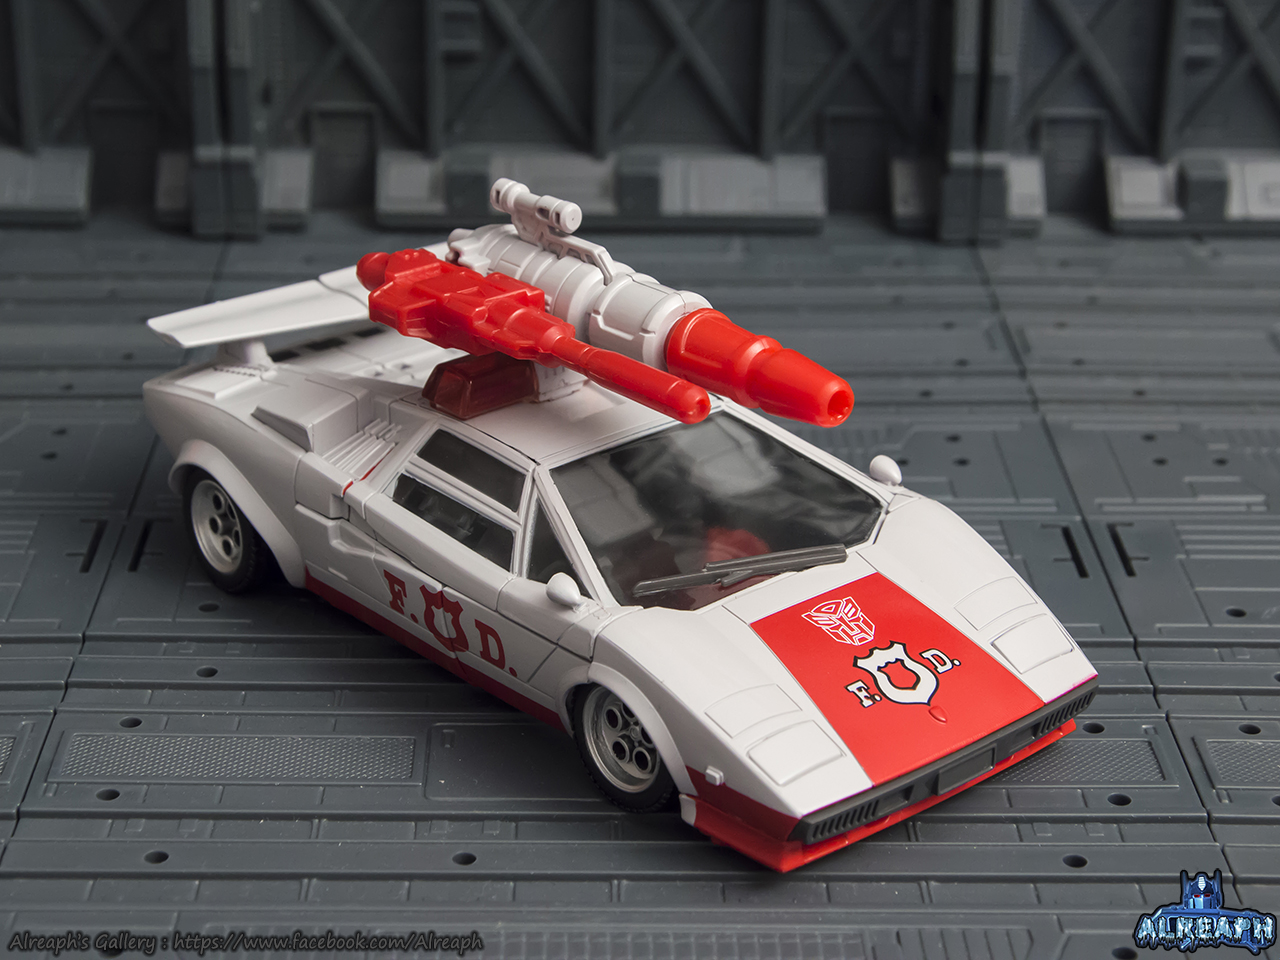 [Masterpiece] MP-14 Red Alert/Feu d'Alerte - Page 2 SXADkGjn